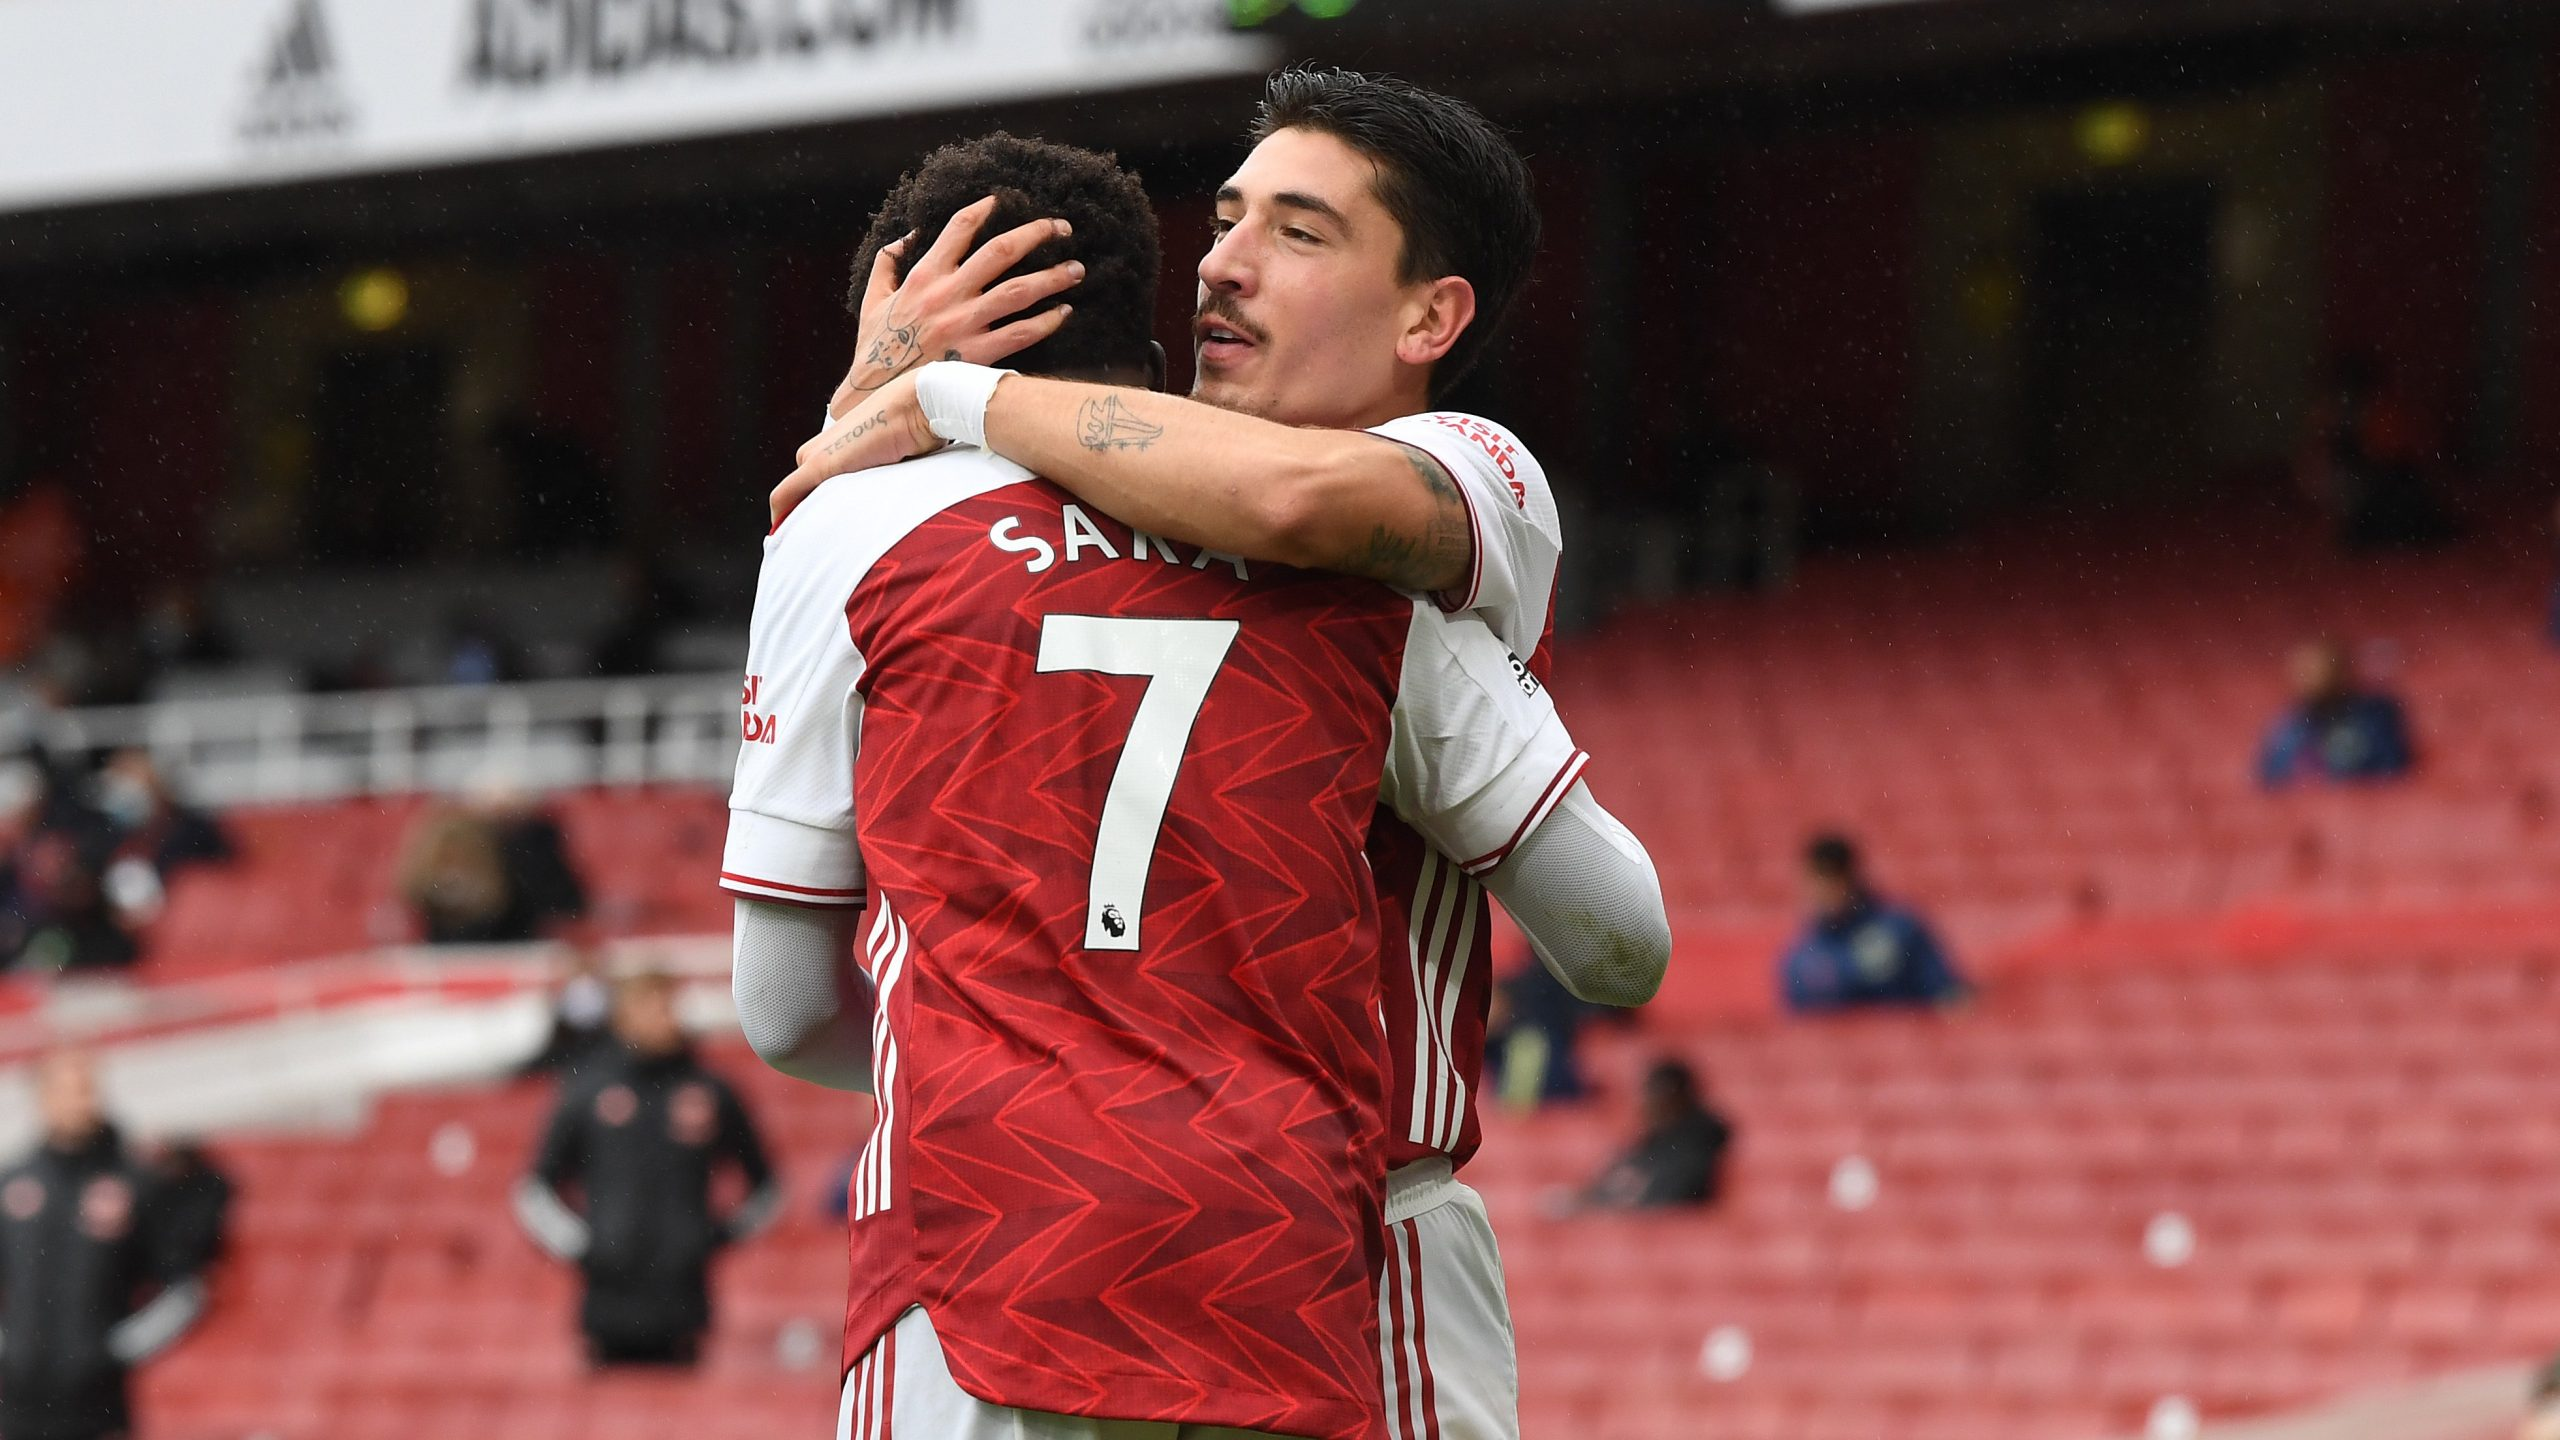 Hector Bellerin Archives - Complete Sports